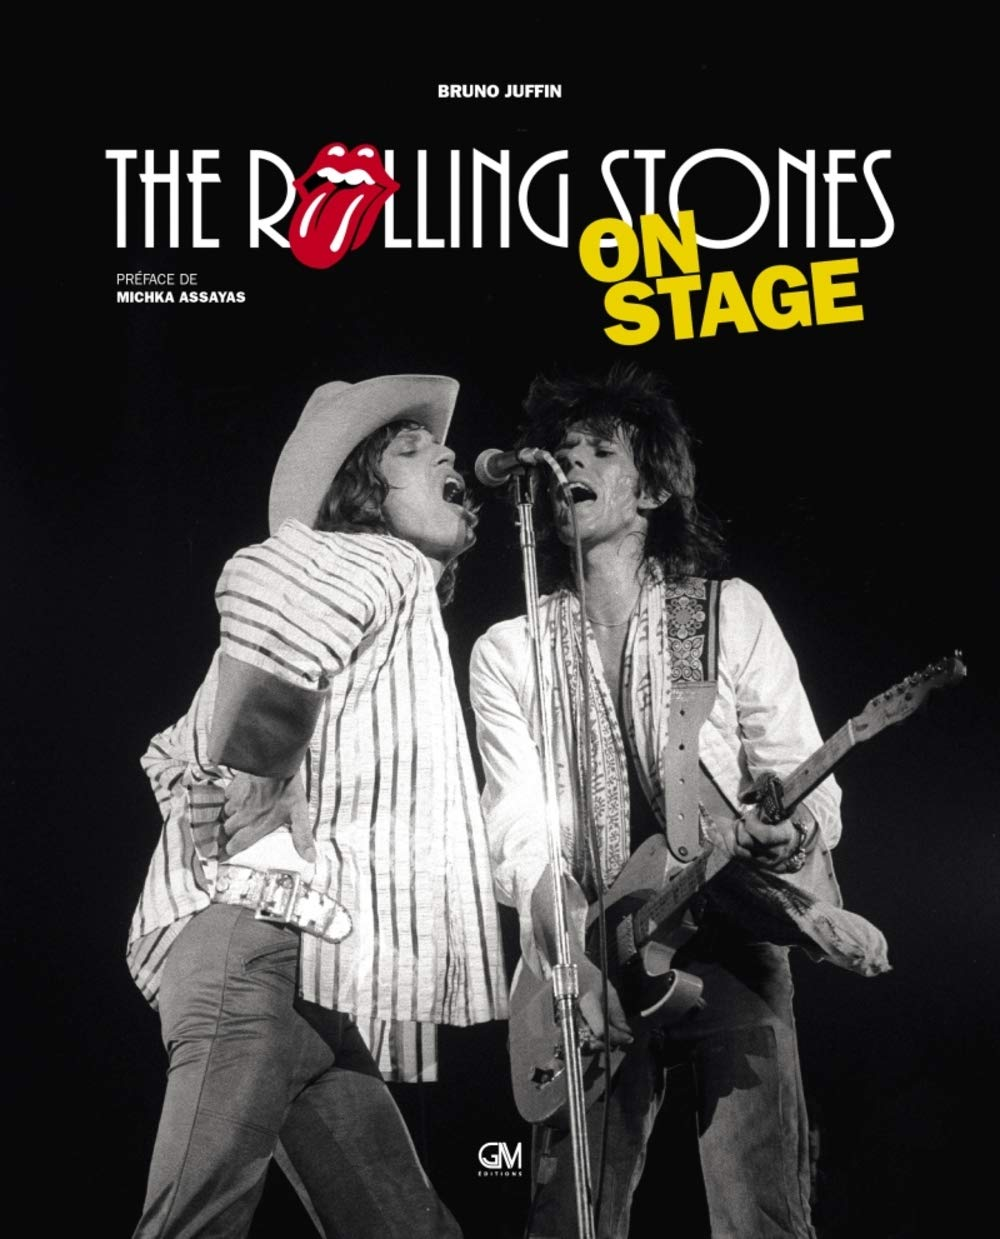 News Littéraires – The Rolling Stones on stage – Bruno Juffin